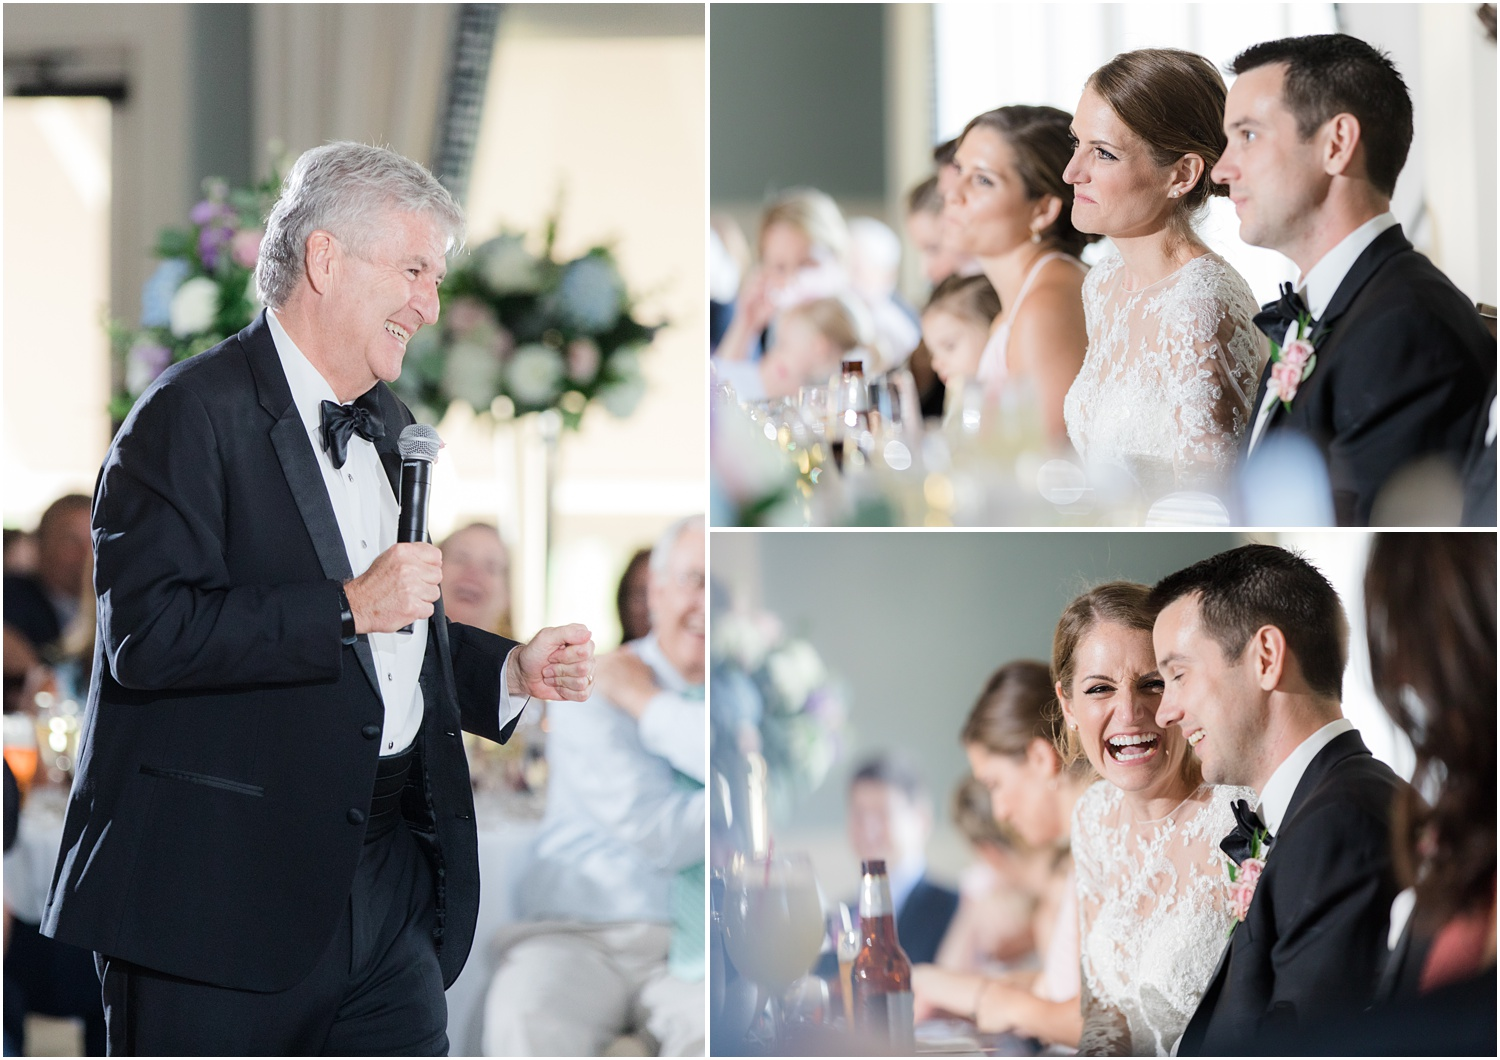 Wedding reception speeches at Canoe Brook Country Club in Summit, NJ.